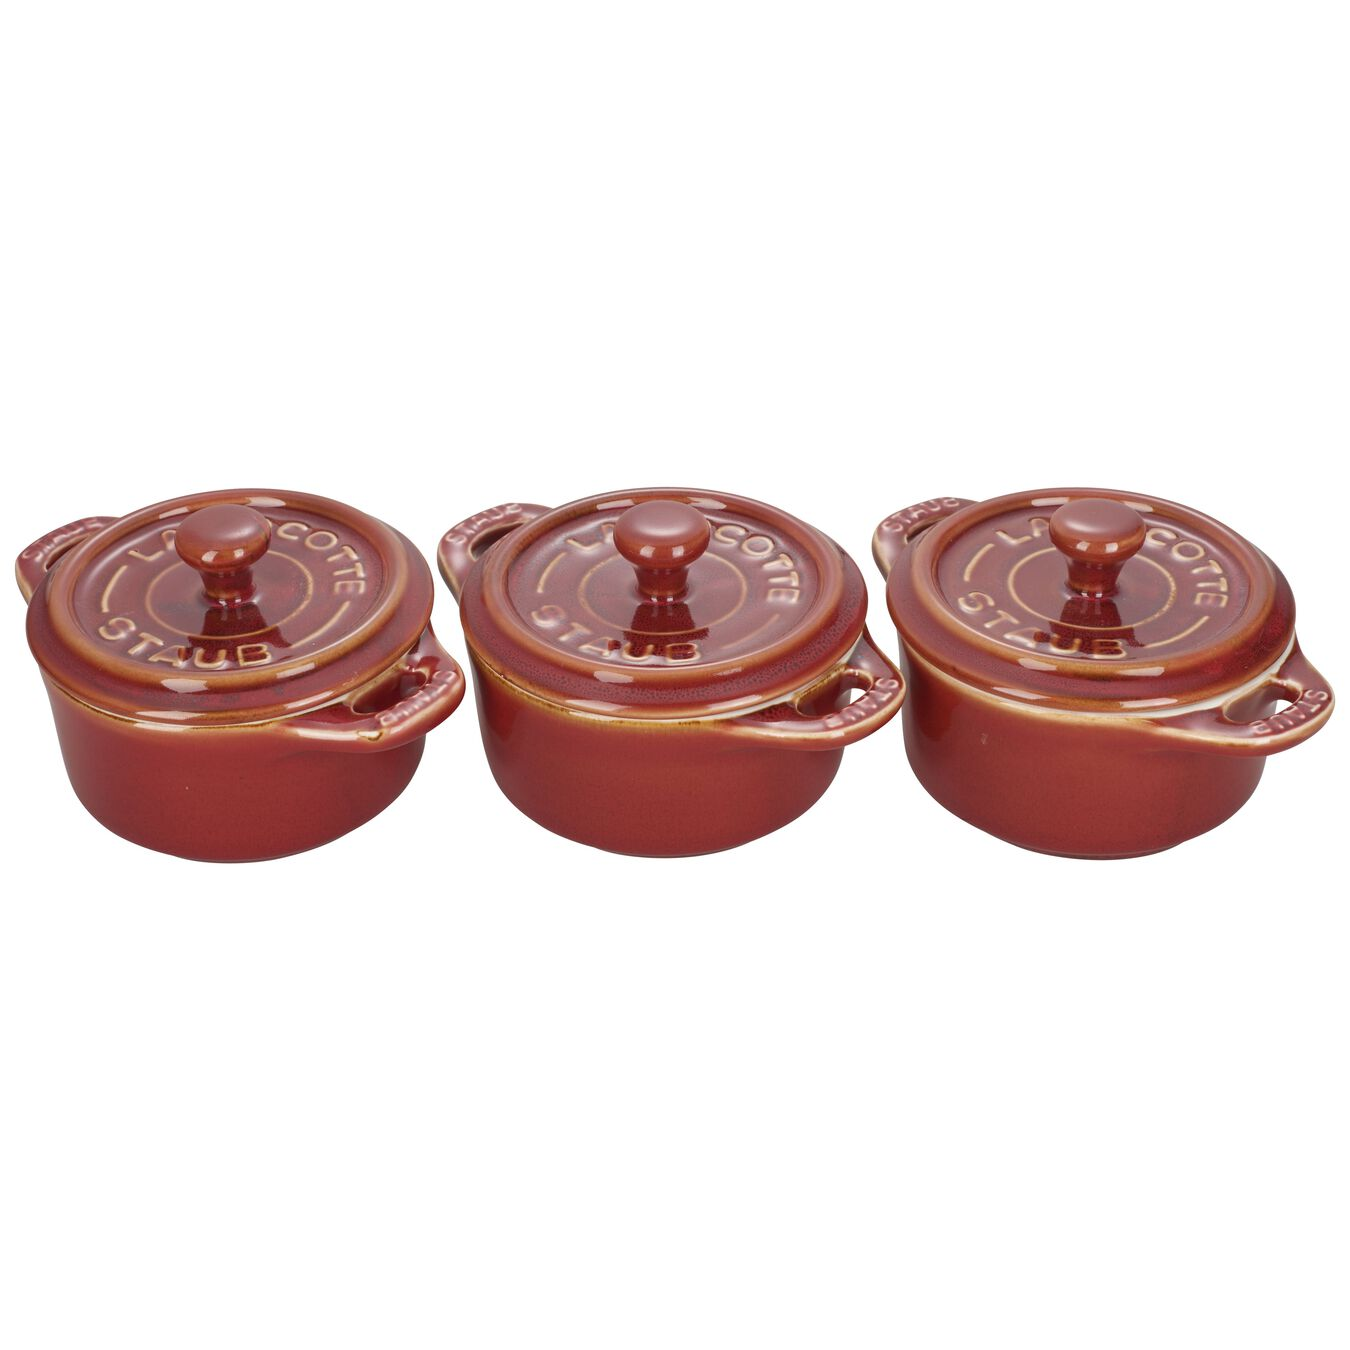 3-pc Mini Round Cocotte Set - Rustic Red,,large 7